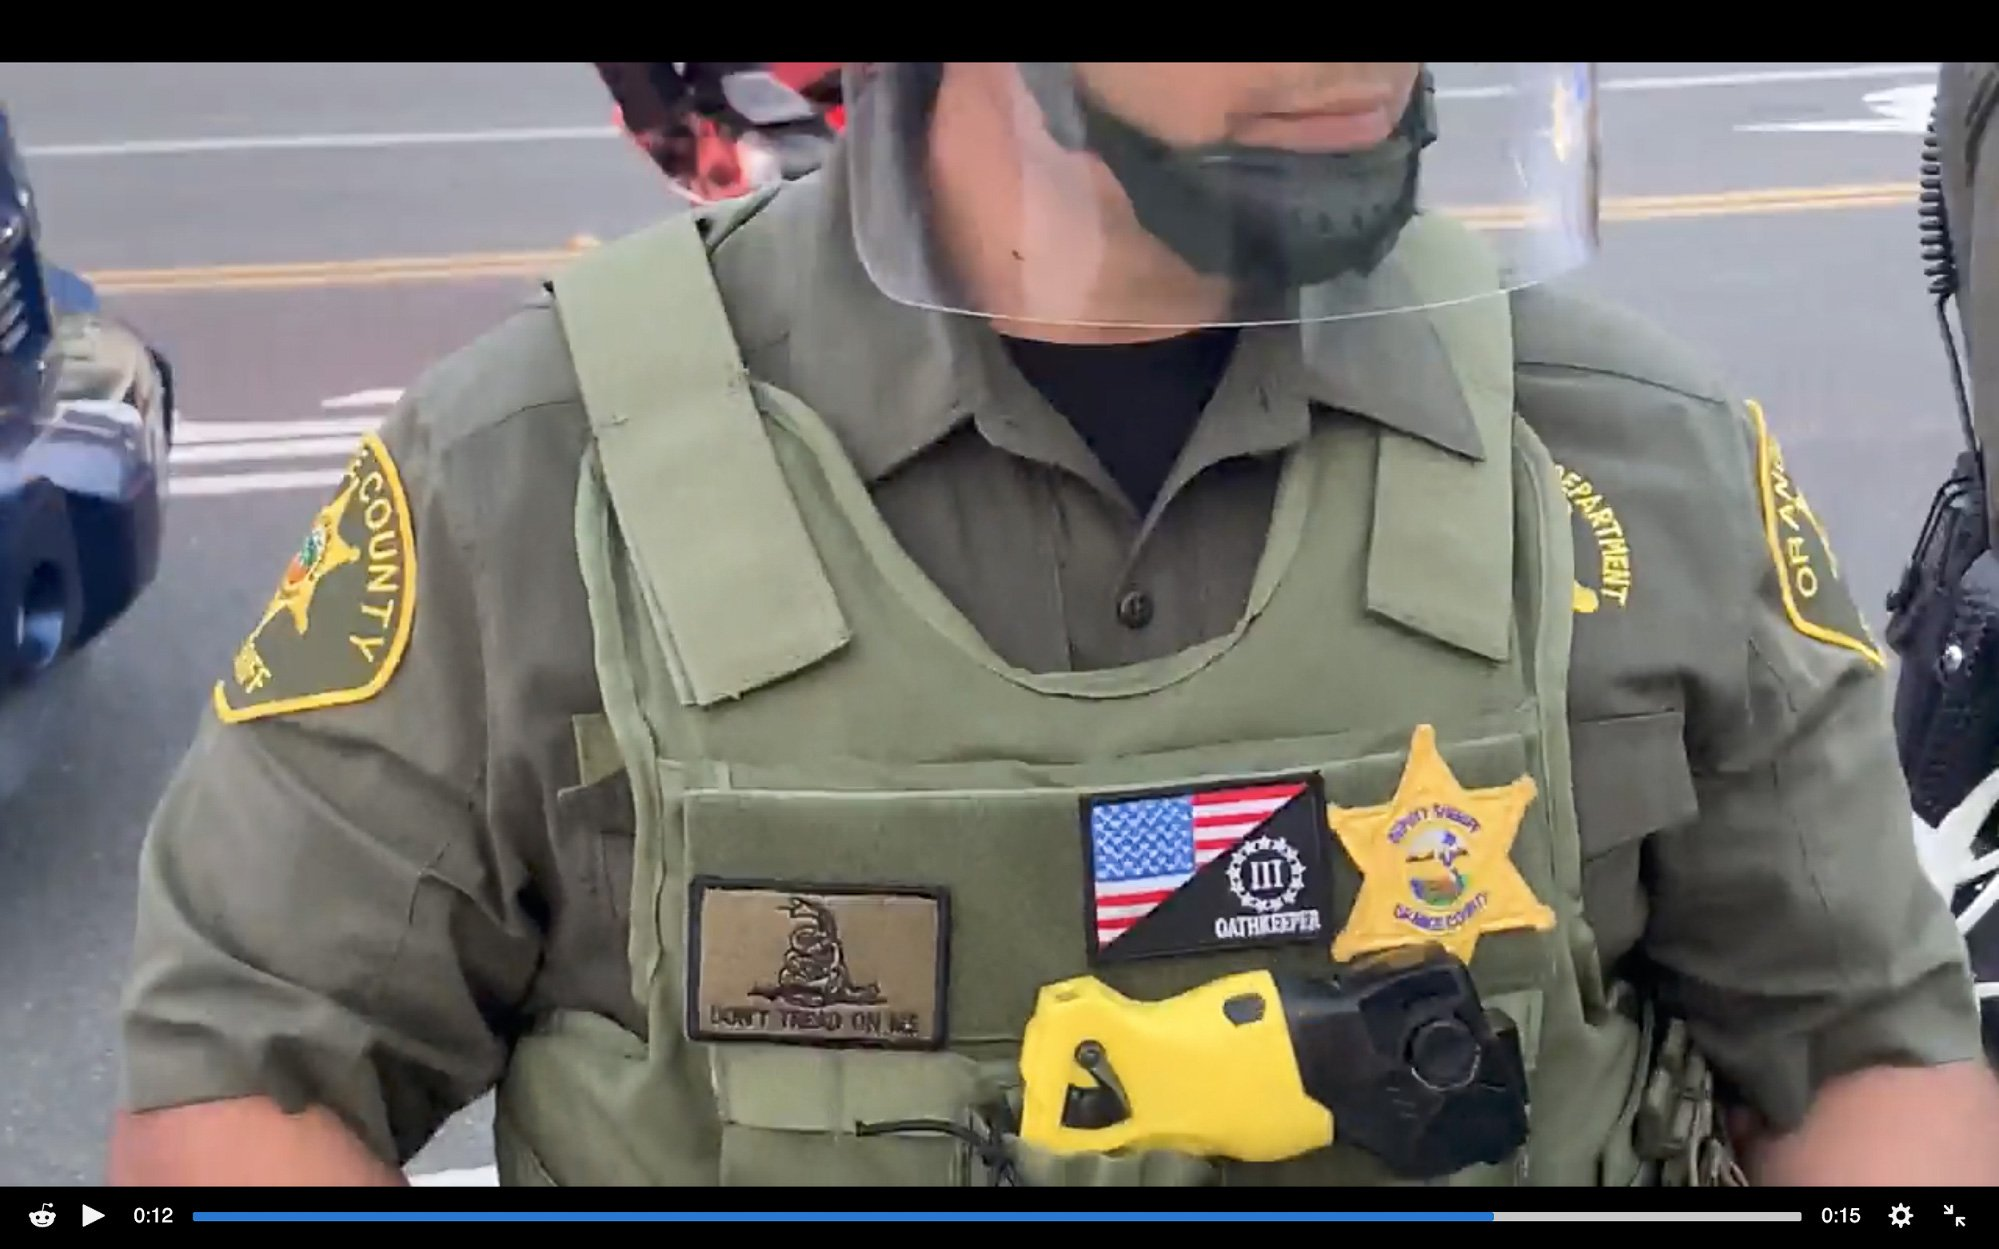 A closeup image of a male Orange County sheriff's deputy in uniform, to which he has affixed two unauthorized far-right patches.